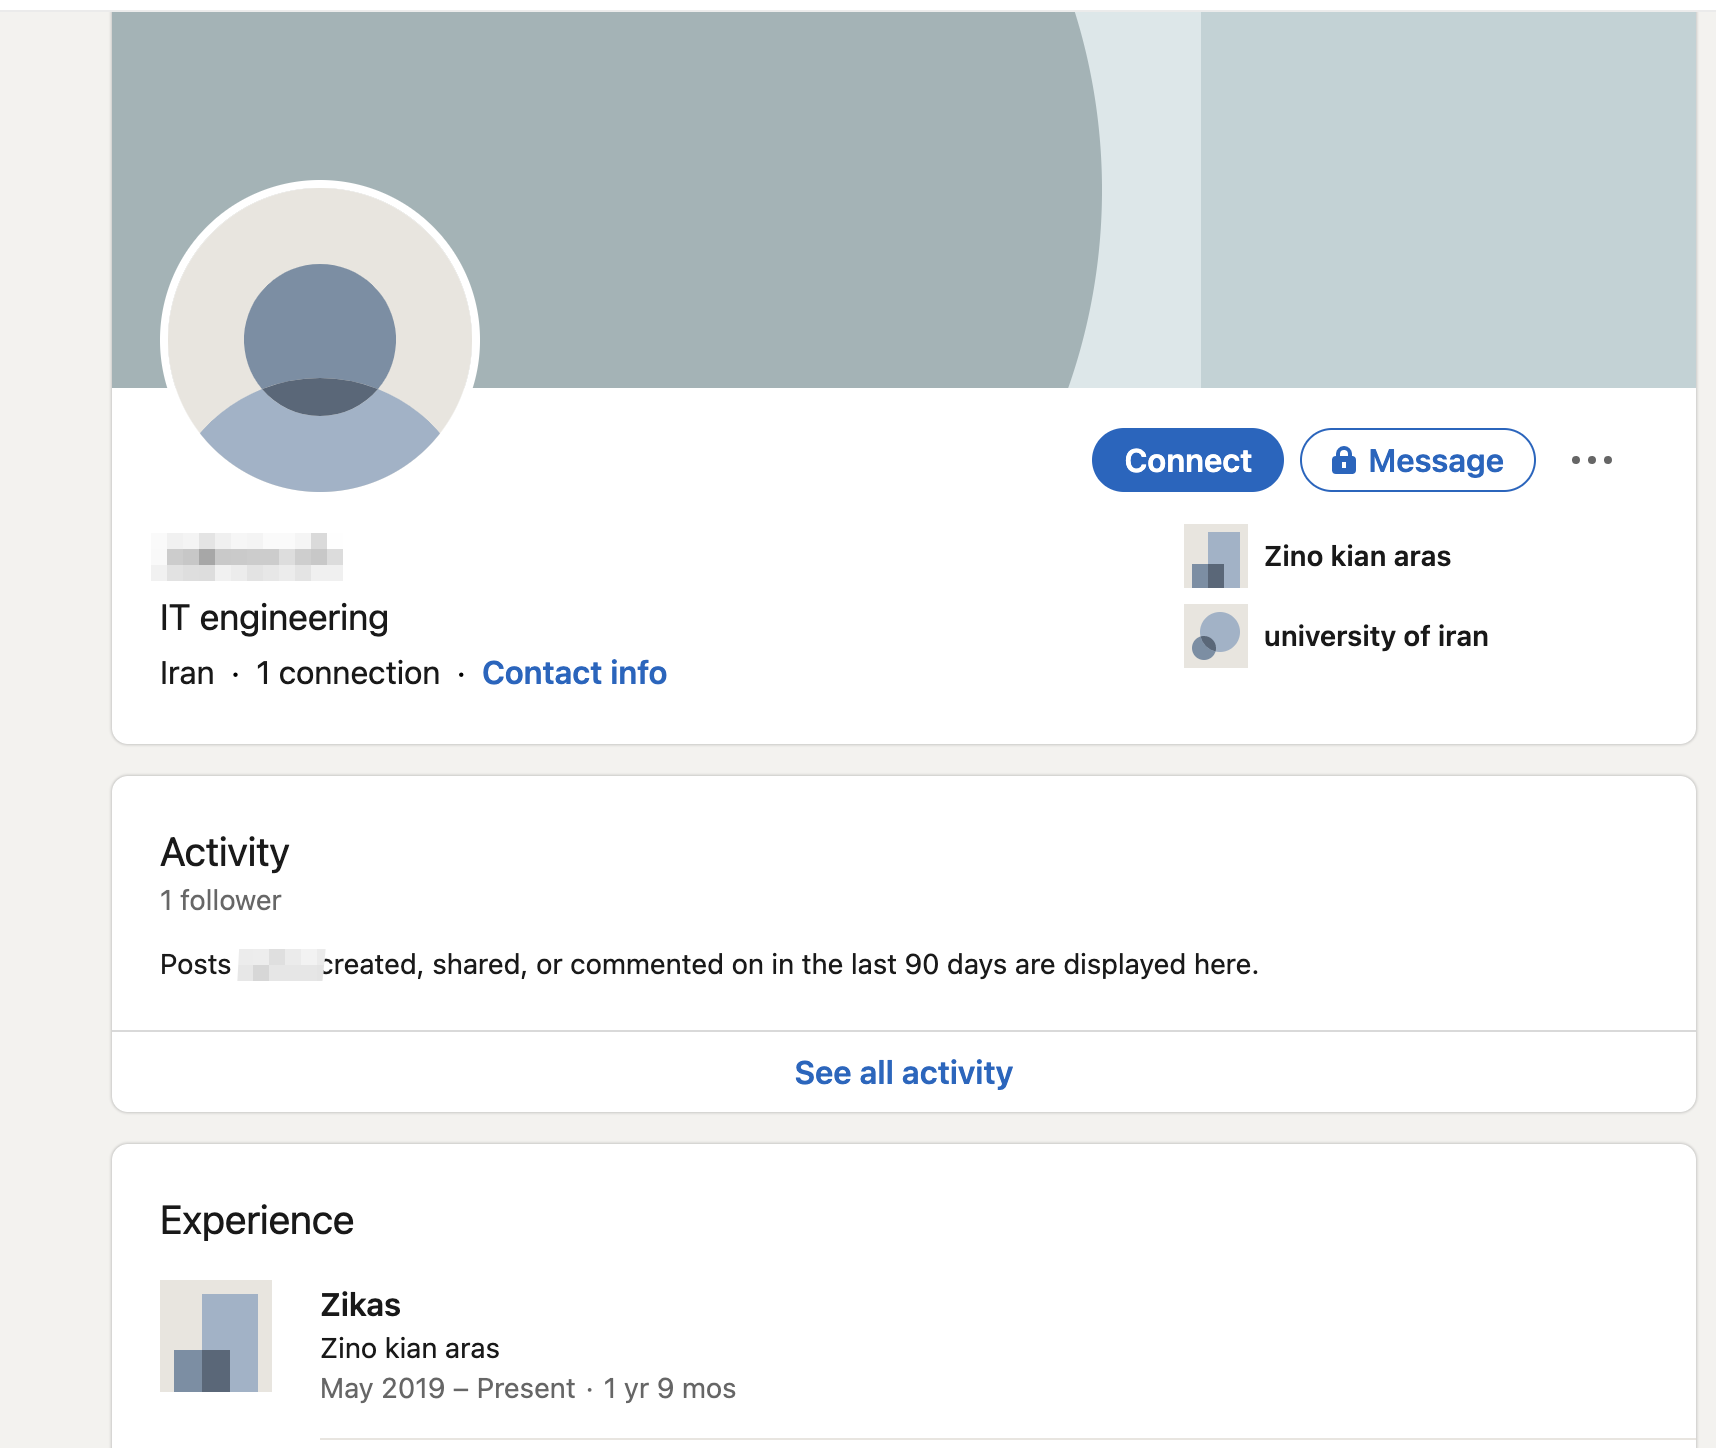 We could find profiles of some of the ZIKAS workers even on LinkedIn.